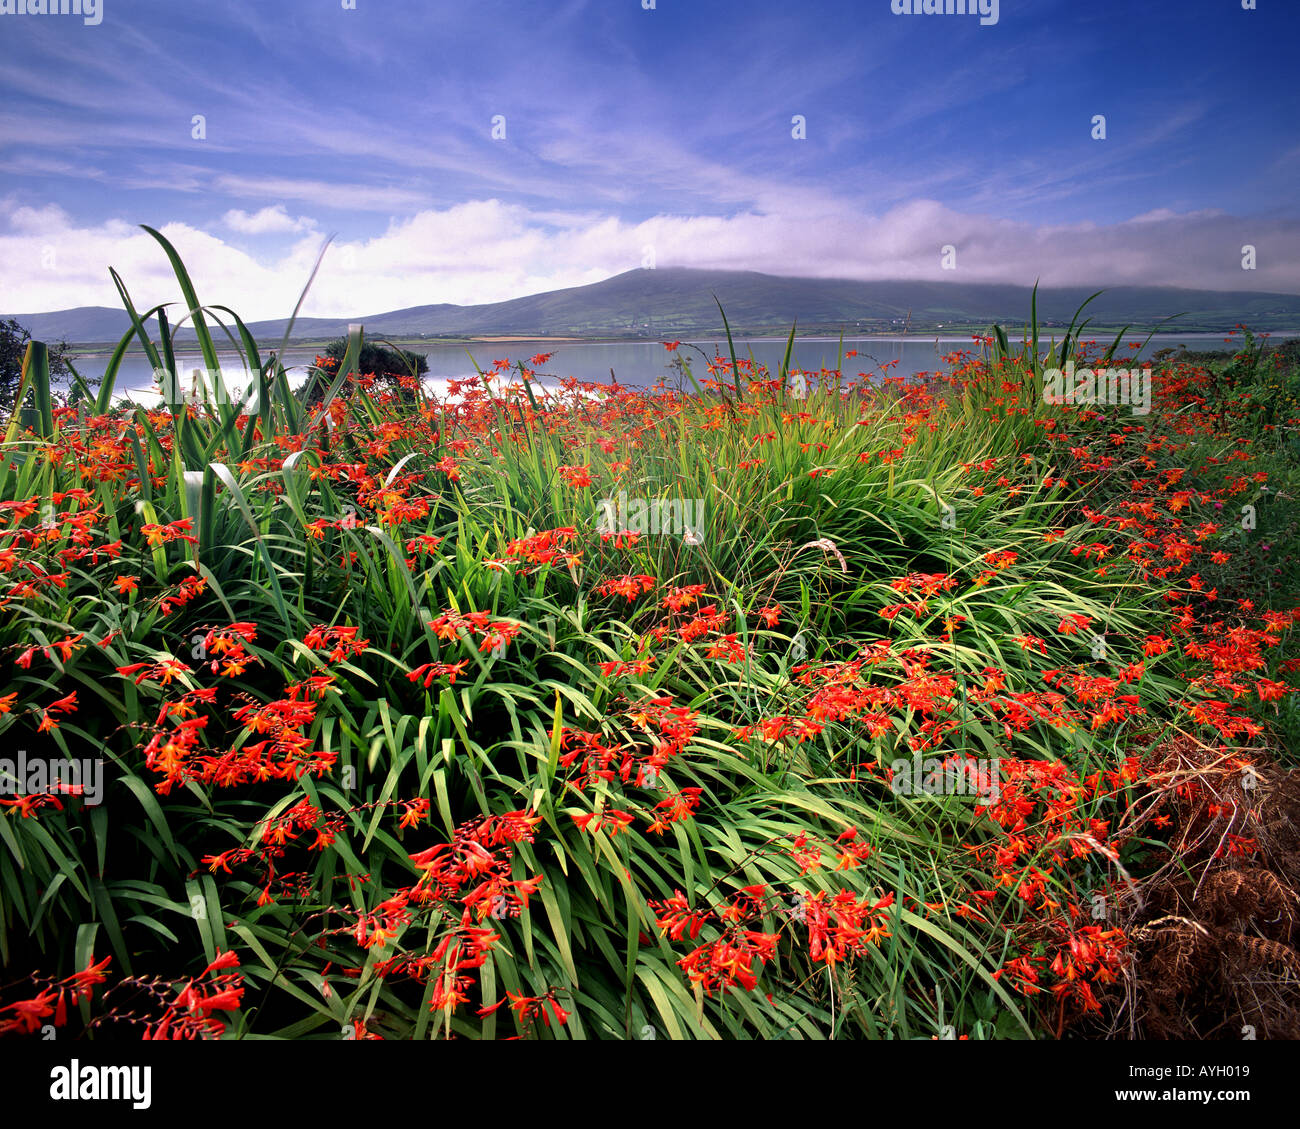 IE - CO. KERRY: Montbretia flowering on Valencia Island - Stock Image